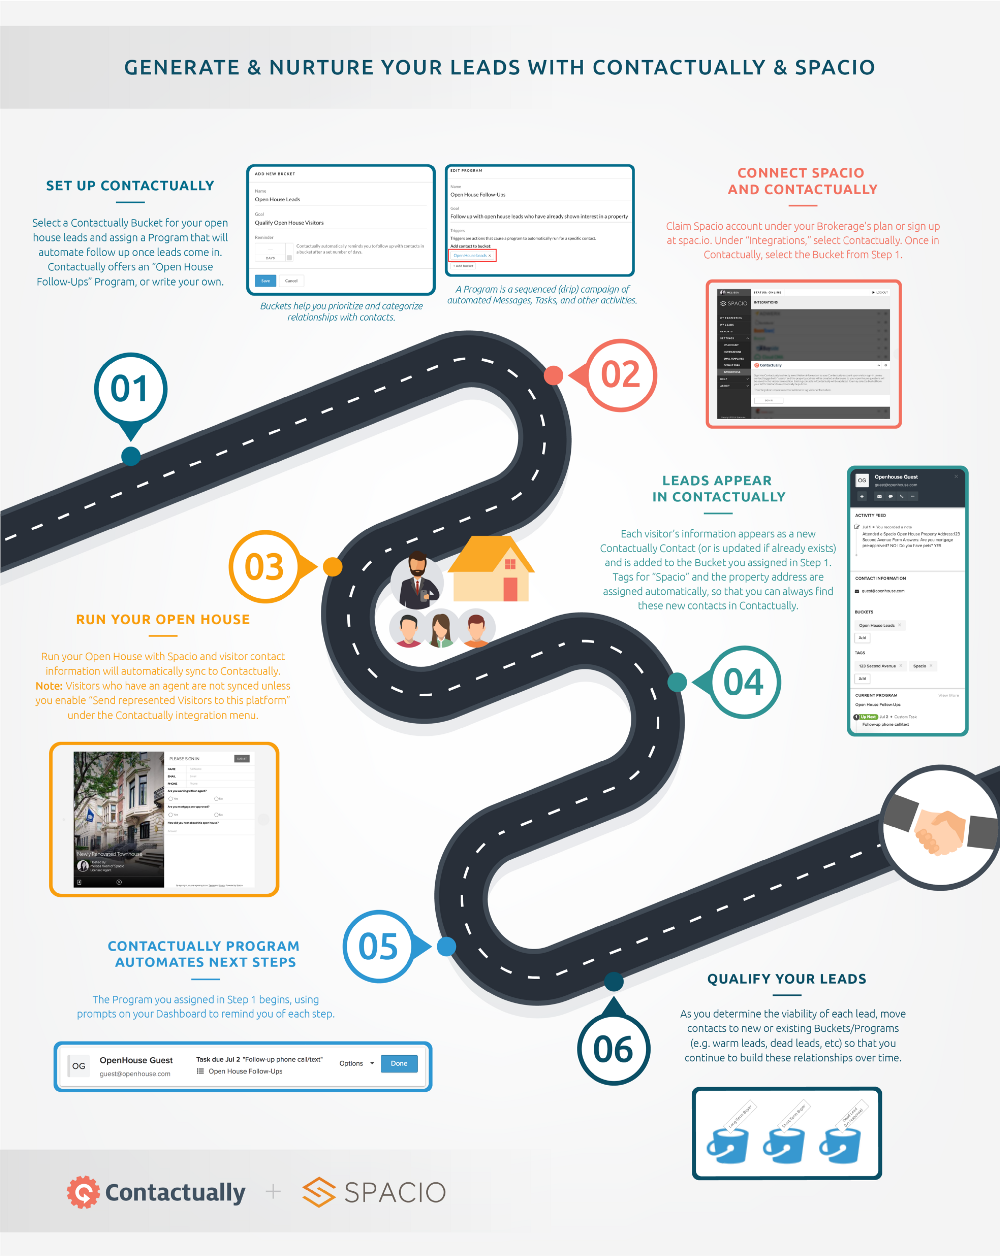 Contactually-Spacio Infographic